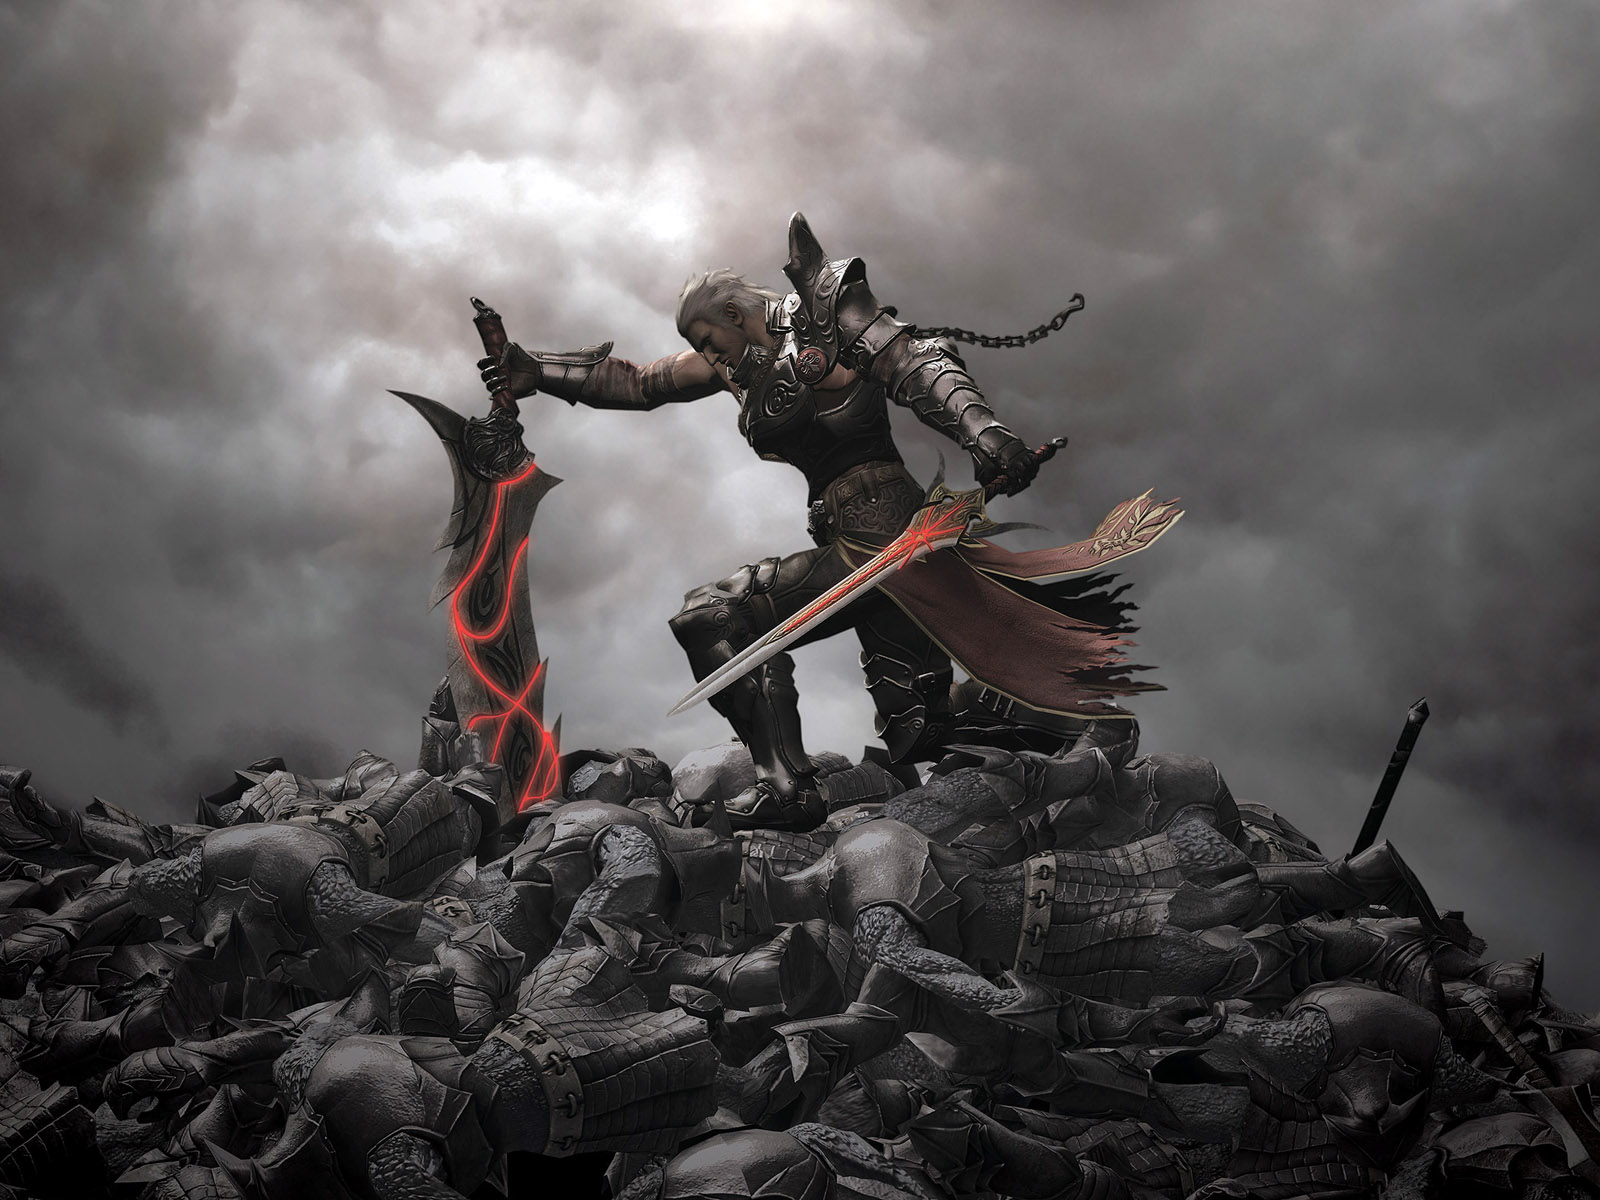 Collection of Games Hd Wallpapers on HDWallpapers